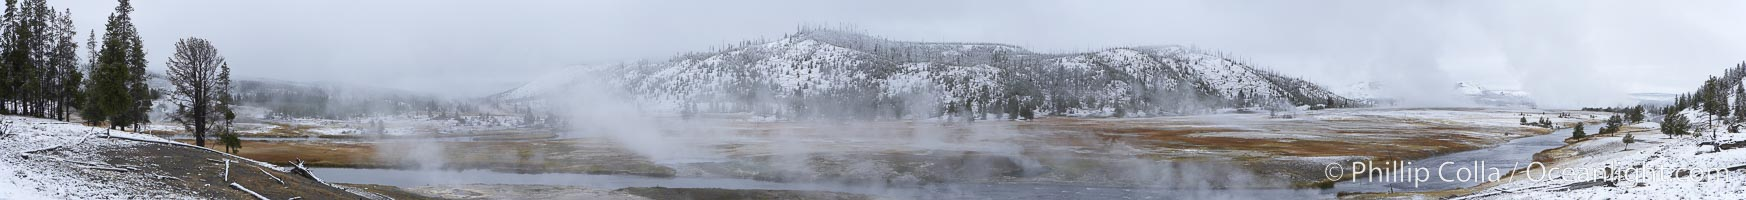 Firehole River, natural hot spring water steaming in cold winter air, panorama, Midway Geyser Basin.,  Copyright Phillip Colla, image #22454, all rights reserved worldwide.